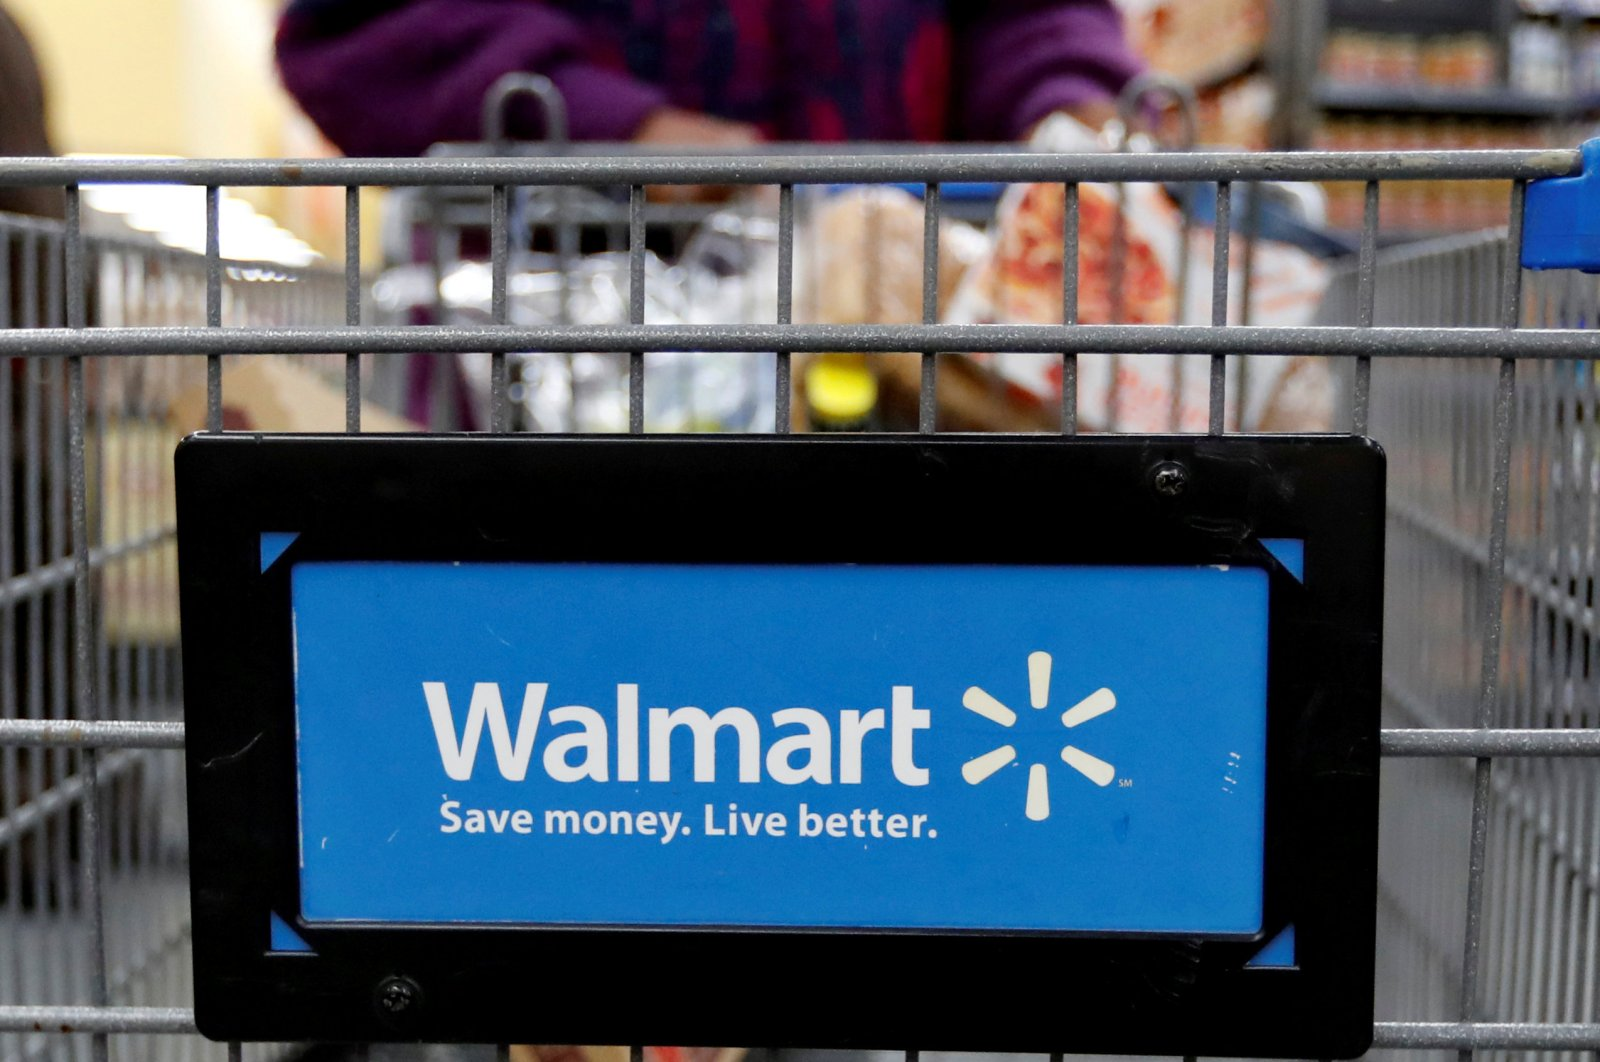 A customer pushes a shopping cart at a Walmart store in Chicago, Illinois, the U.S., Nov. 23, 2016. (Reuters Photo)